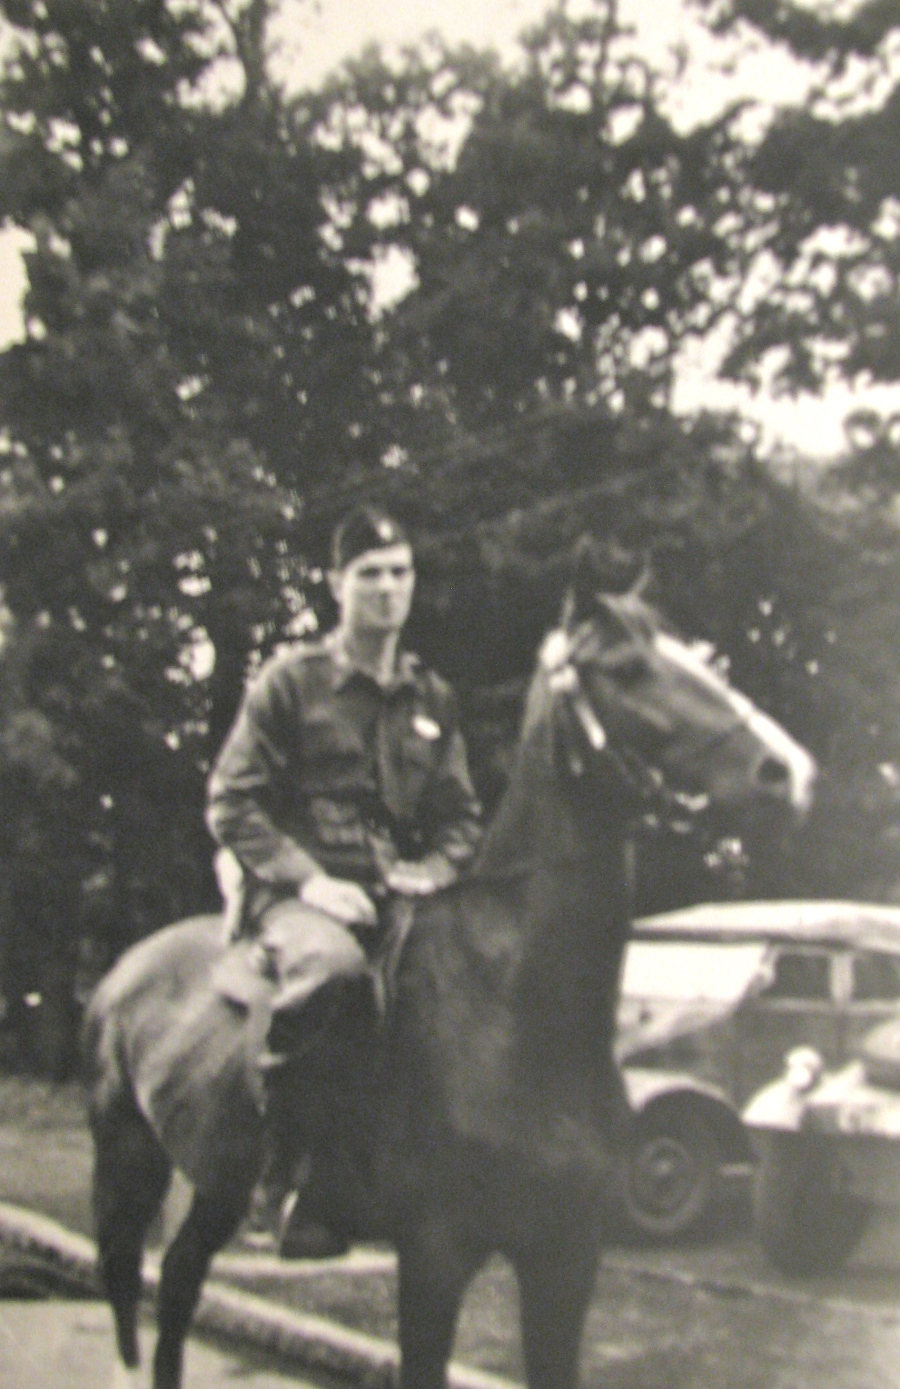 Charles Maloney tries out a horse he had corralled in a POW camp he operated in Alsfeld, Germany. The horse belonged to one of the six captured German generals in the camp. Note the Volkswagens in the background. Photo provided